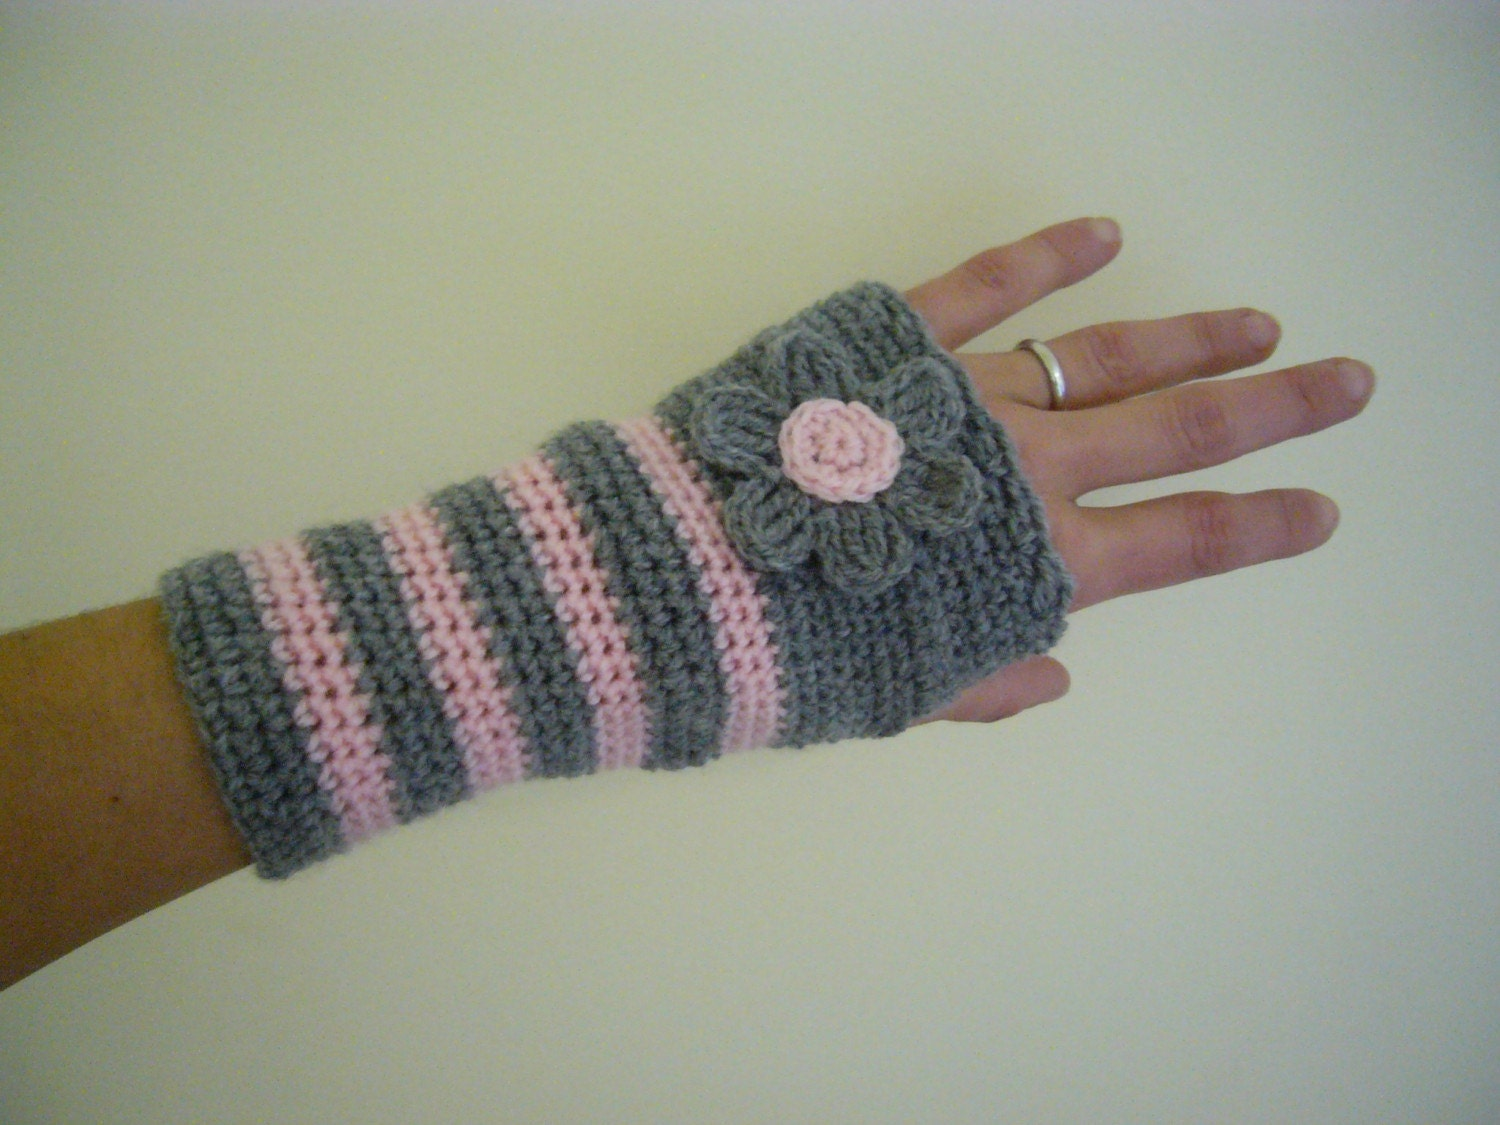 Free Crochet Patterns Hand Warmers : Fingerless gloves hand warmers Crochet PDF Pattern by yoghi911